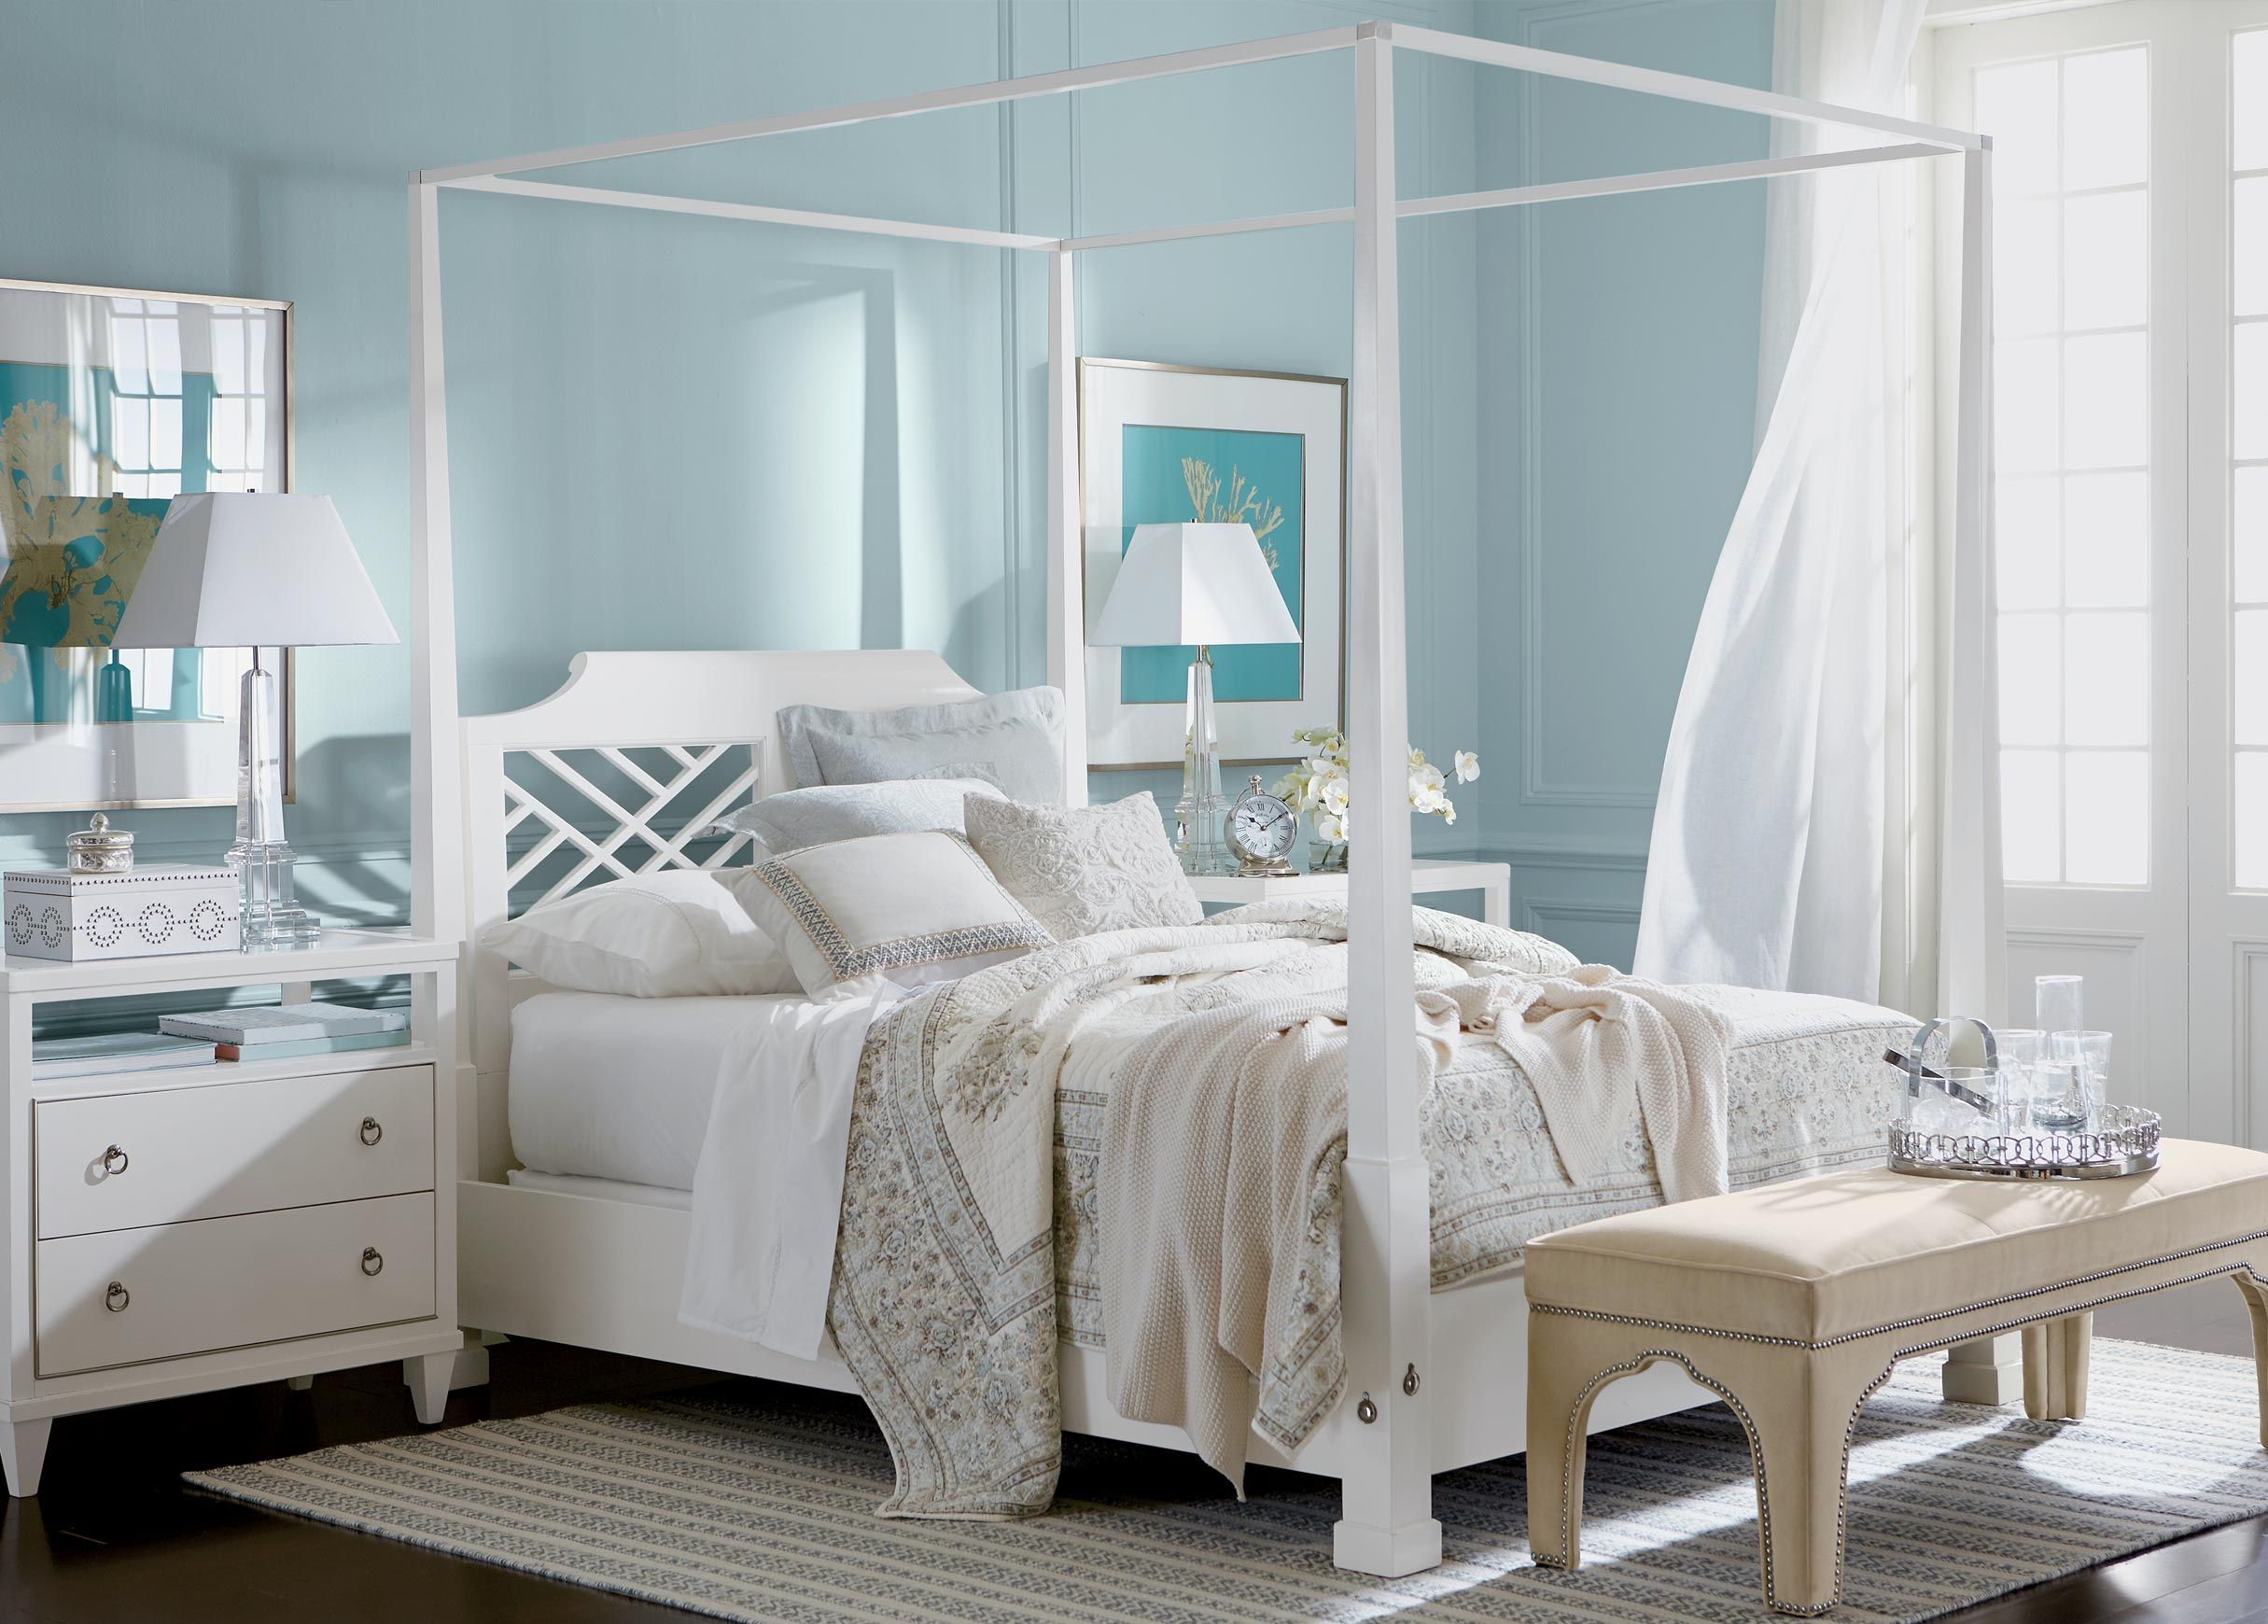 A Stunning Open Canopy Bed The Color Of Clouds With